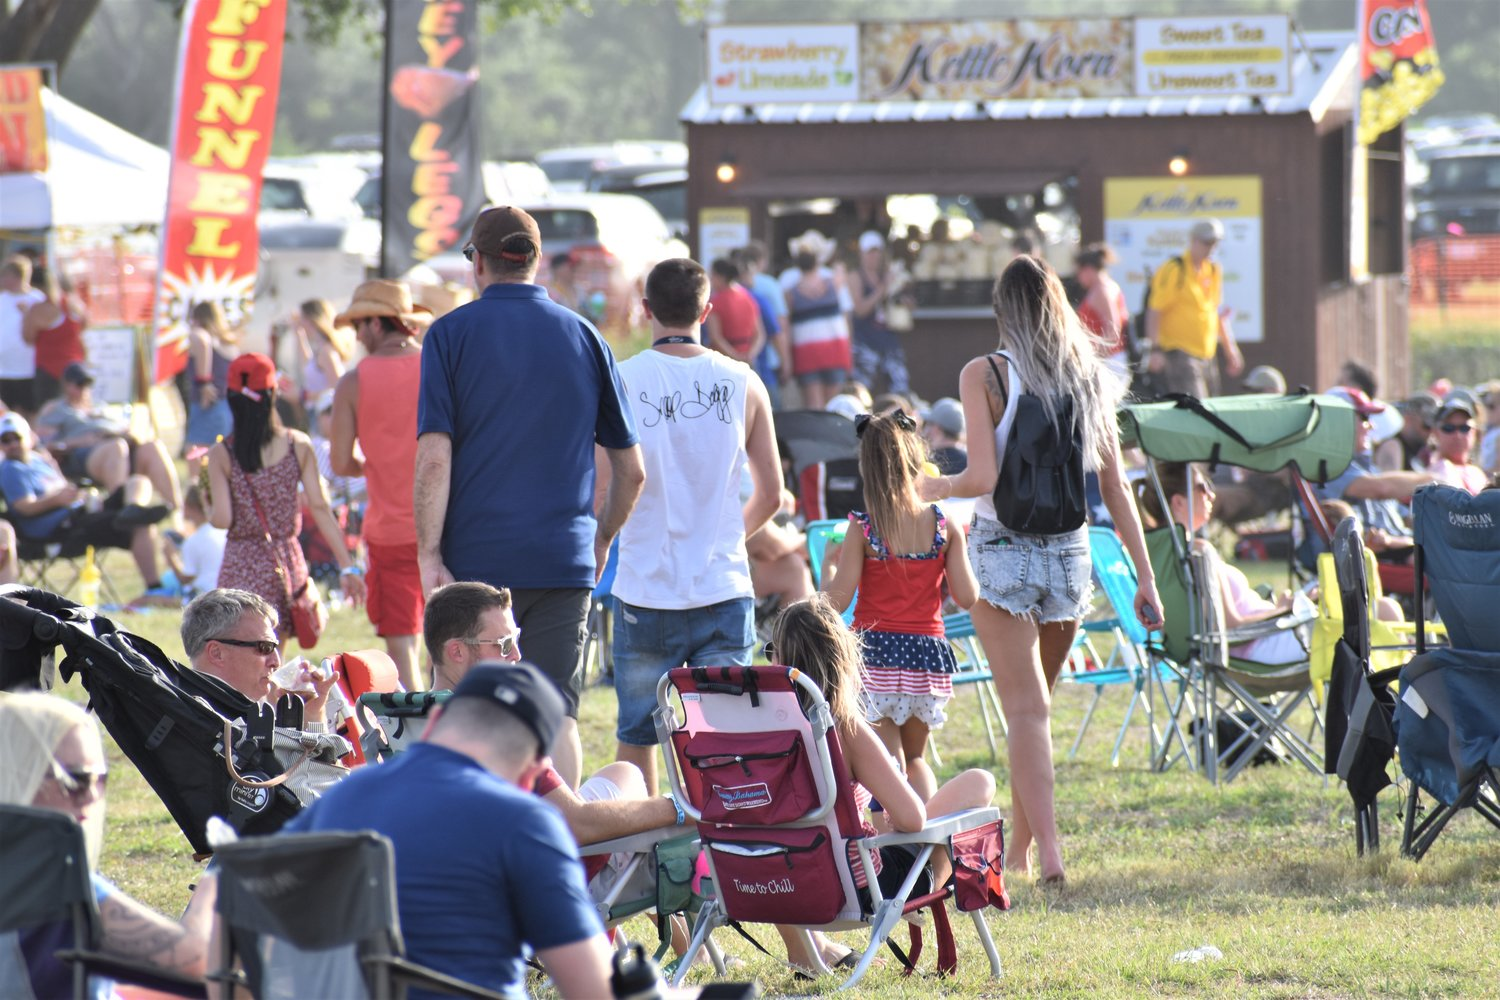 Attendees set up lawn chairs and blankets nearby the food vendors at Liberty Fest in Leander on Thursday.